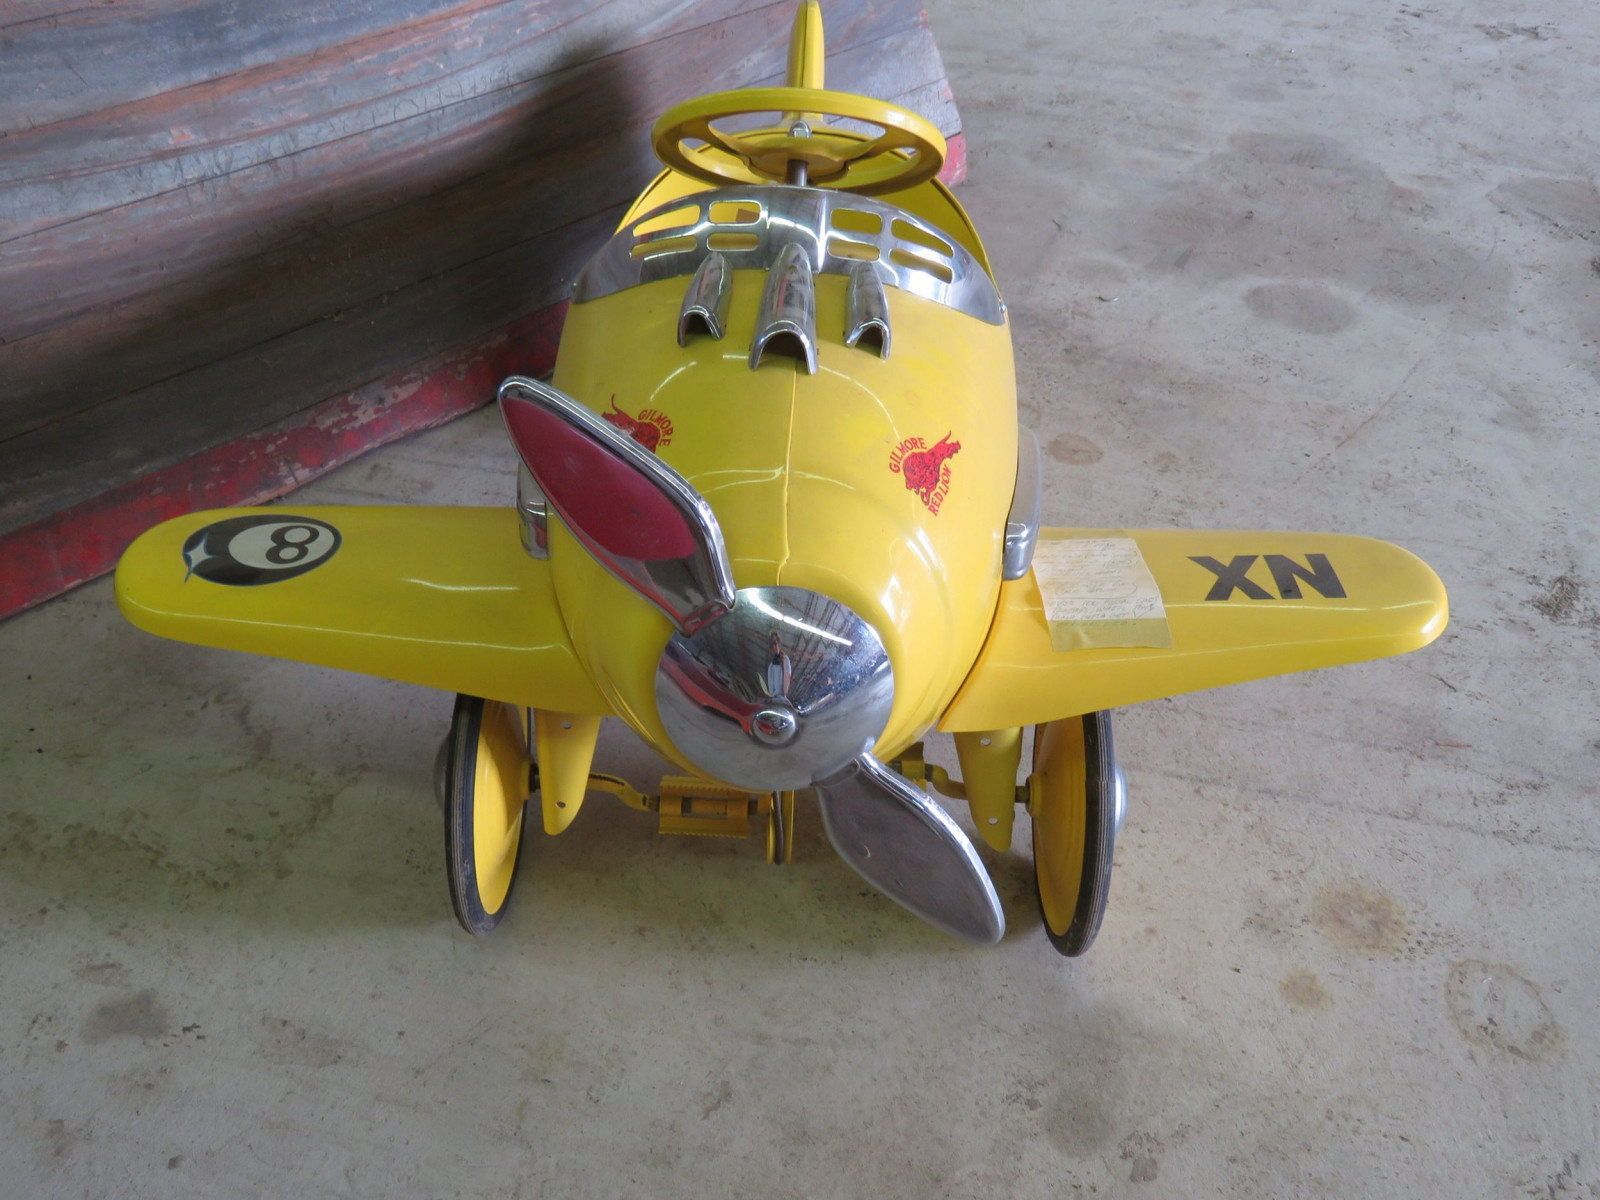 Reproduction Airplane Pedal Car - Image 2